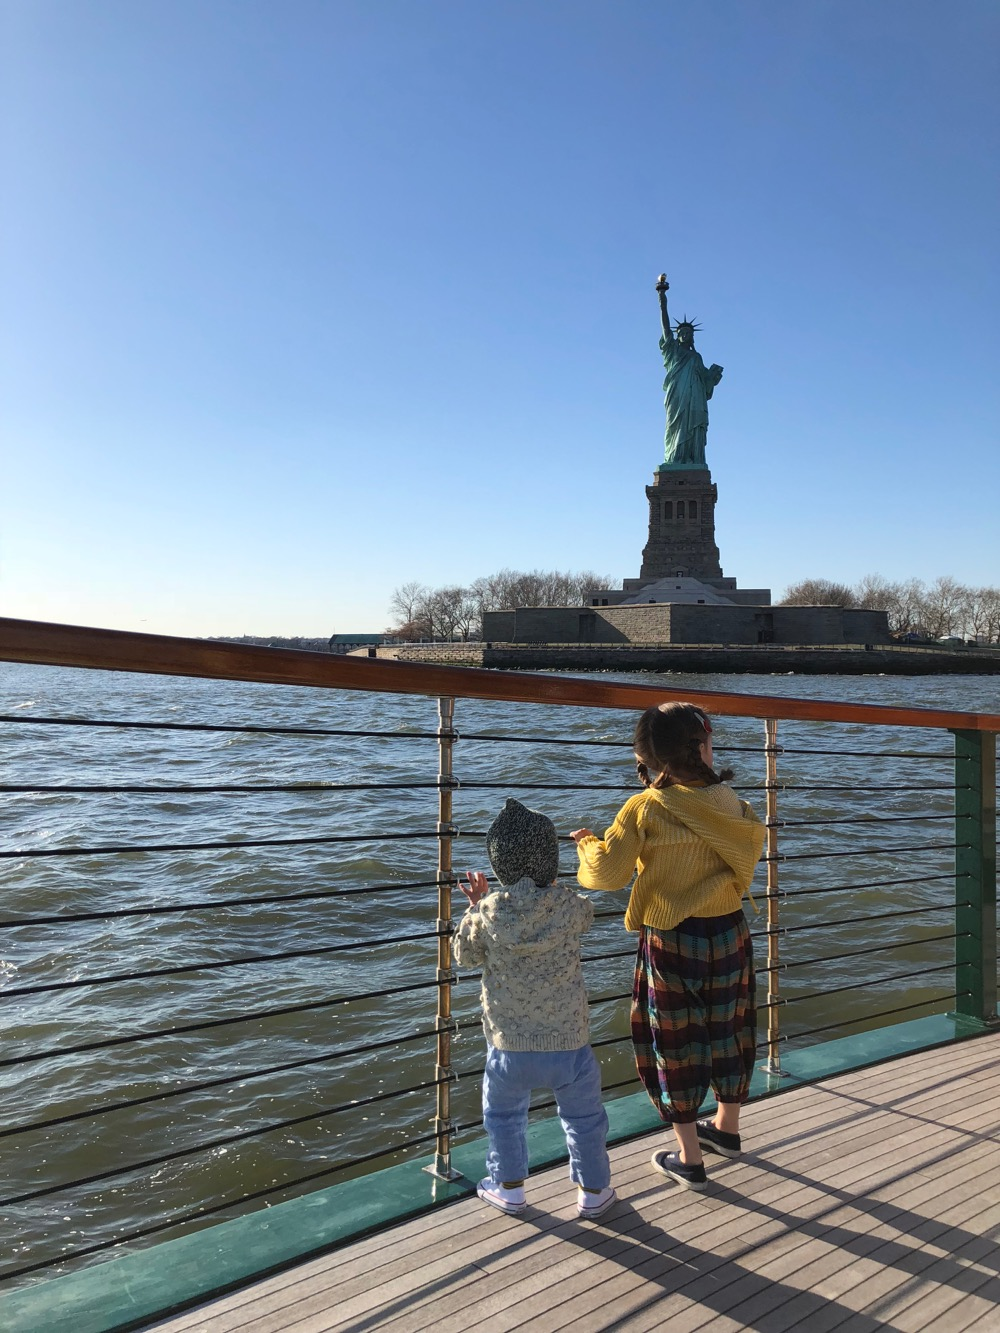 Two children on the deck of the boat looking at the Statue of Liberty